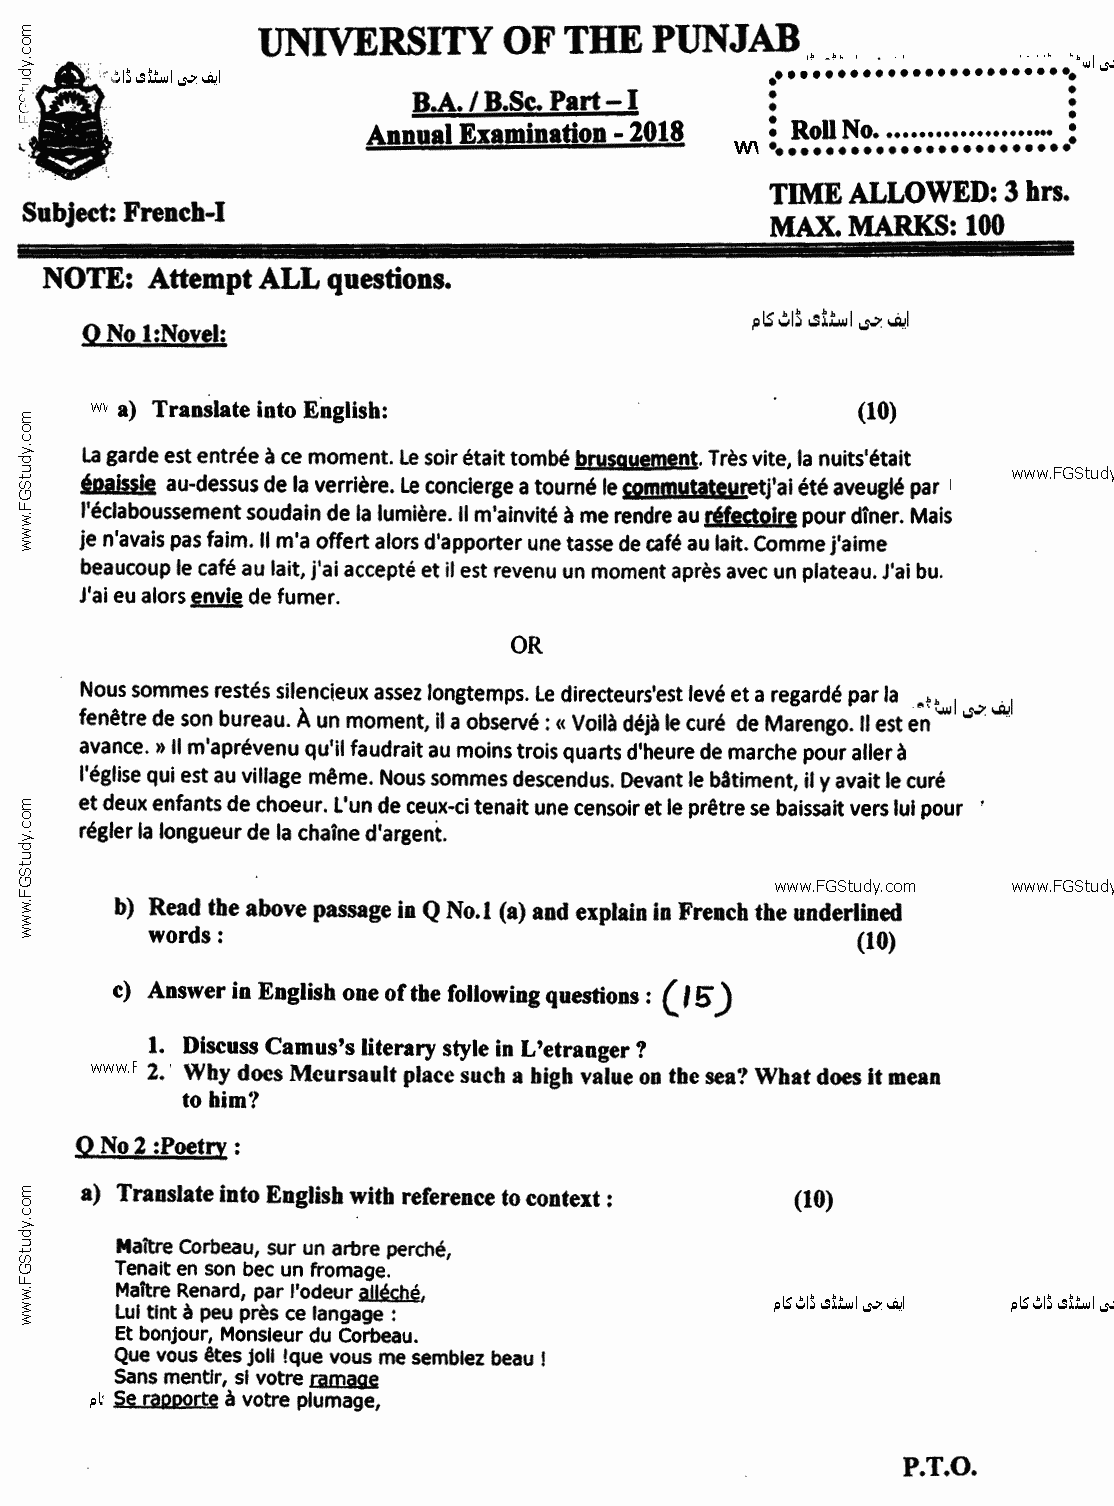 ba part 1 past papers 2018 French page 1